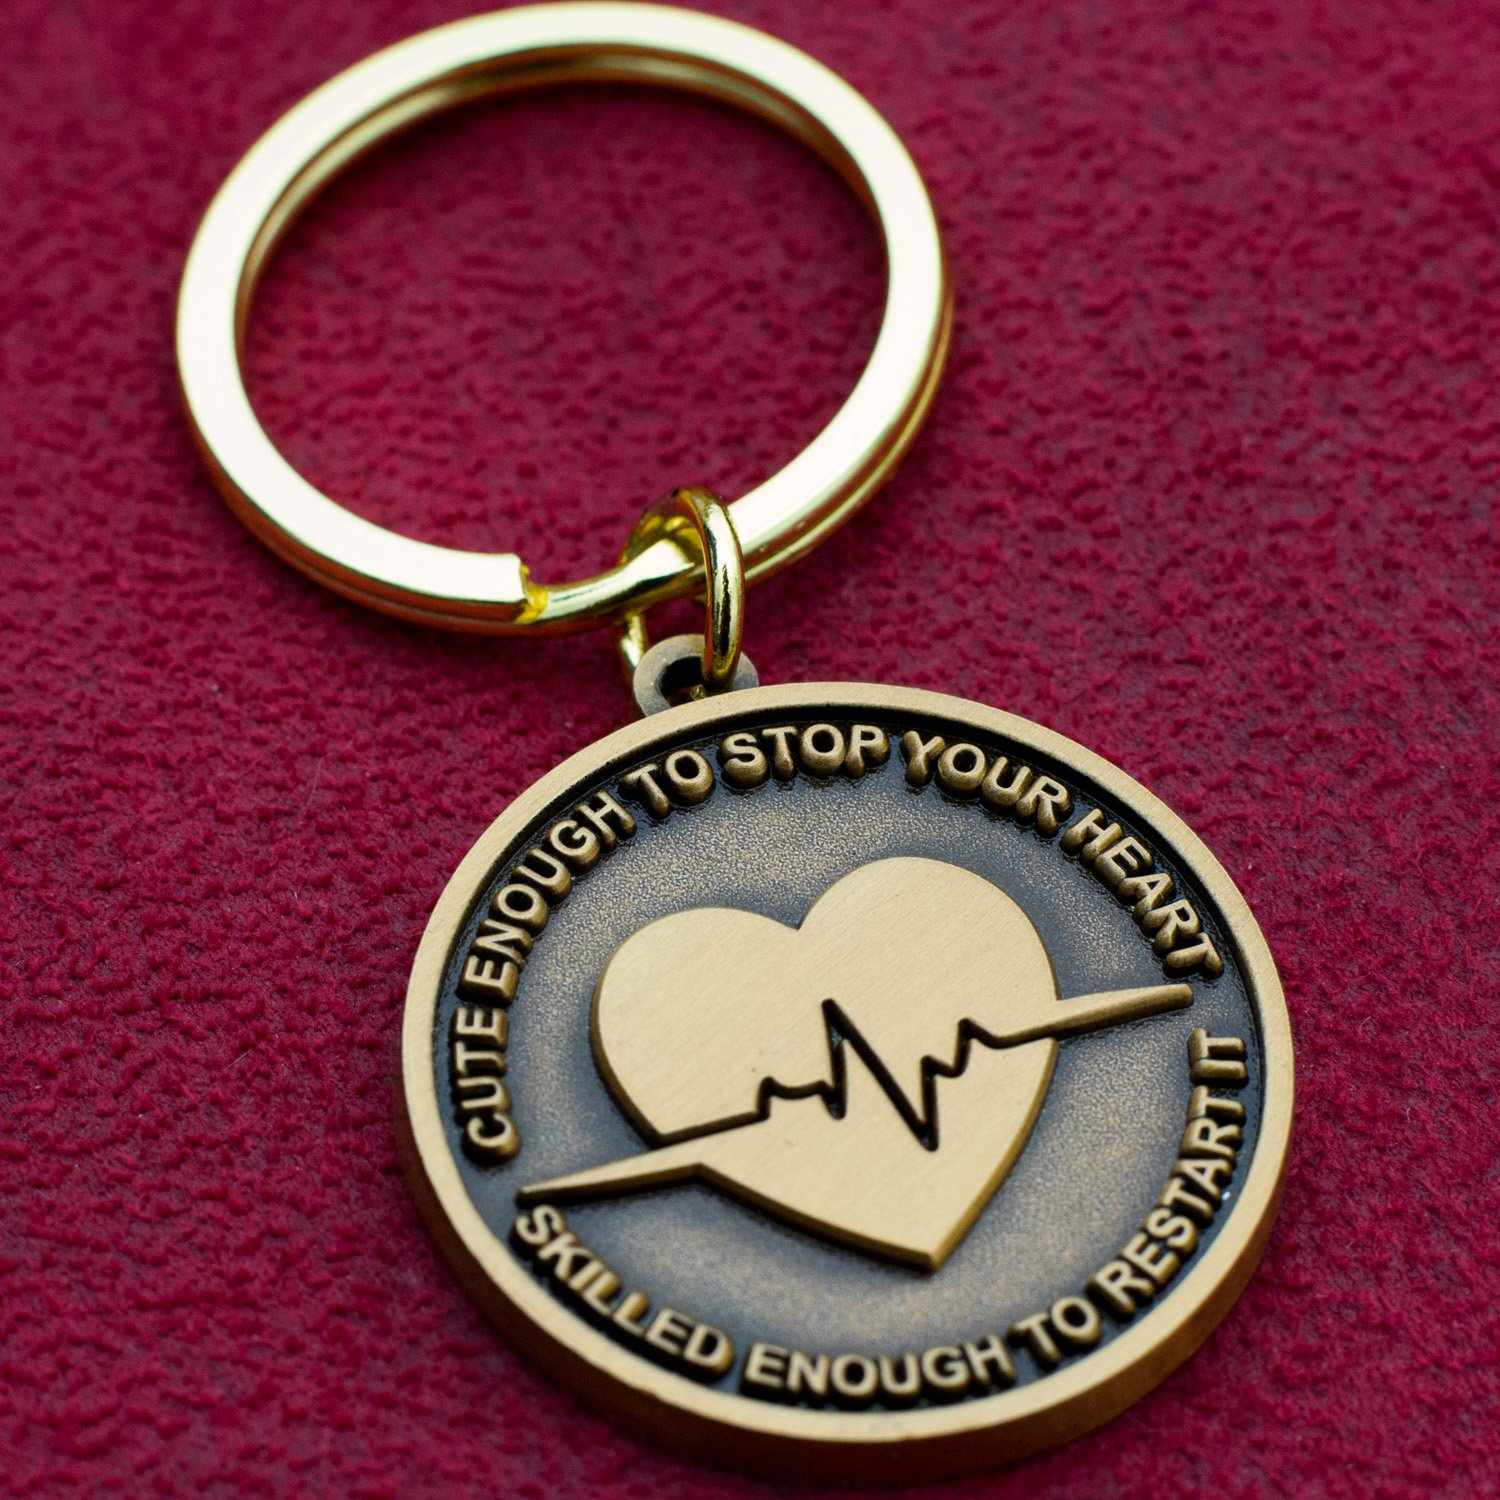 Nurse Gift Idea - ''Cute Enough To Stop Your Heart, Skilled Enough To Restart It'' Keychain by Nurse Gifts (Image #3)